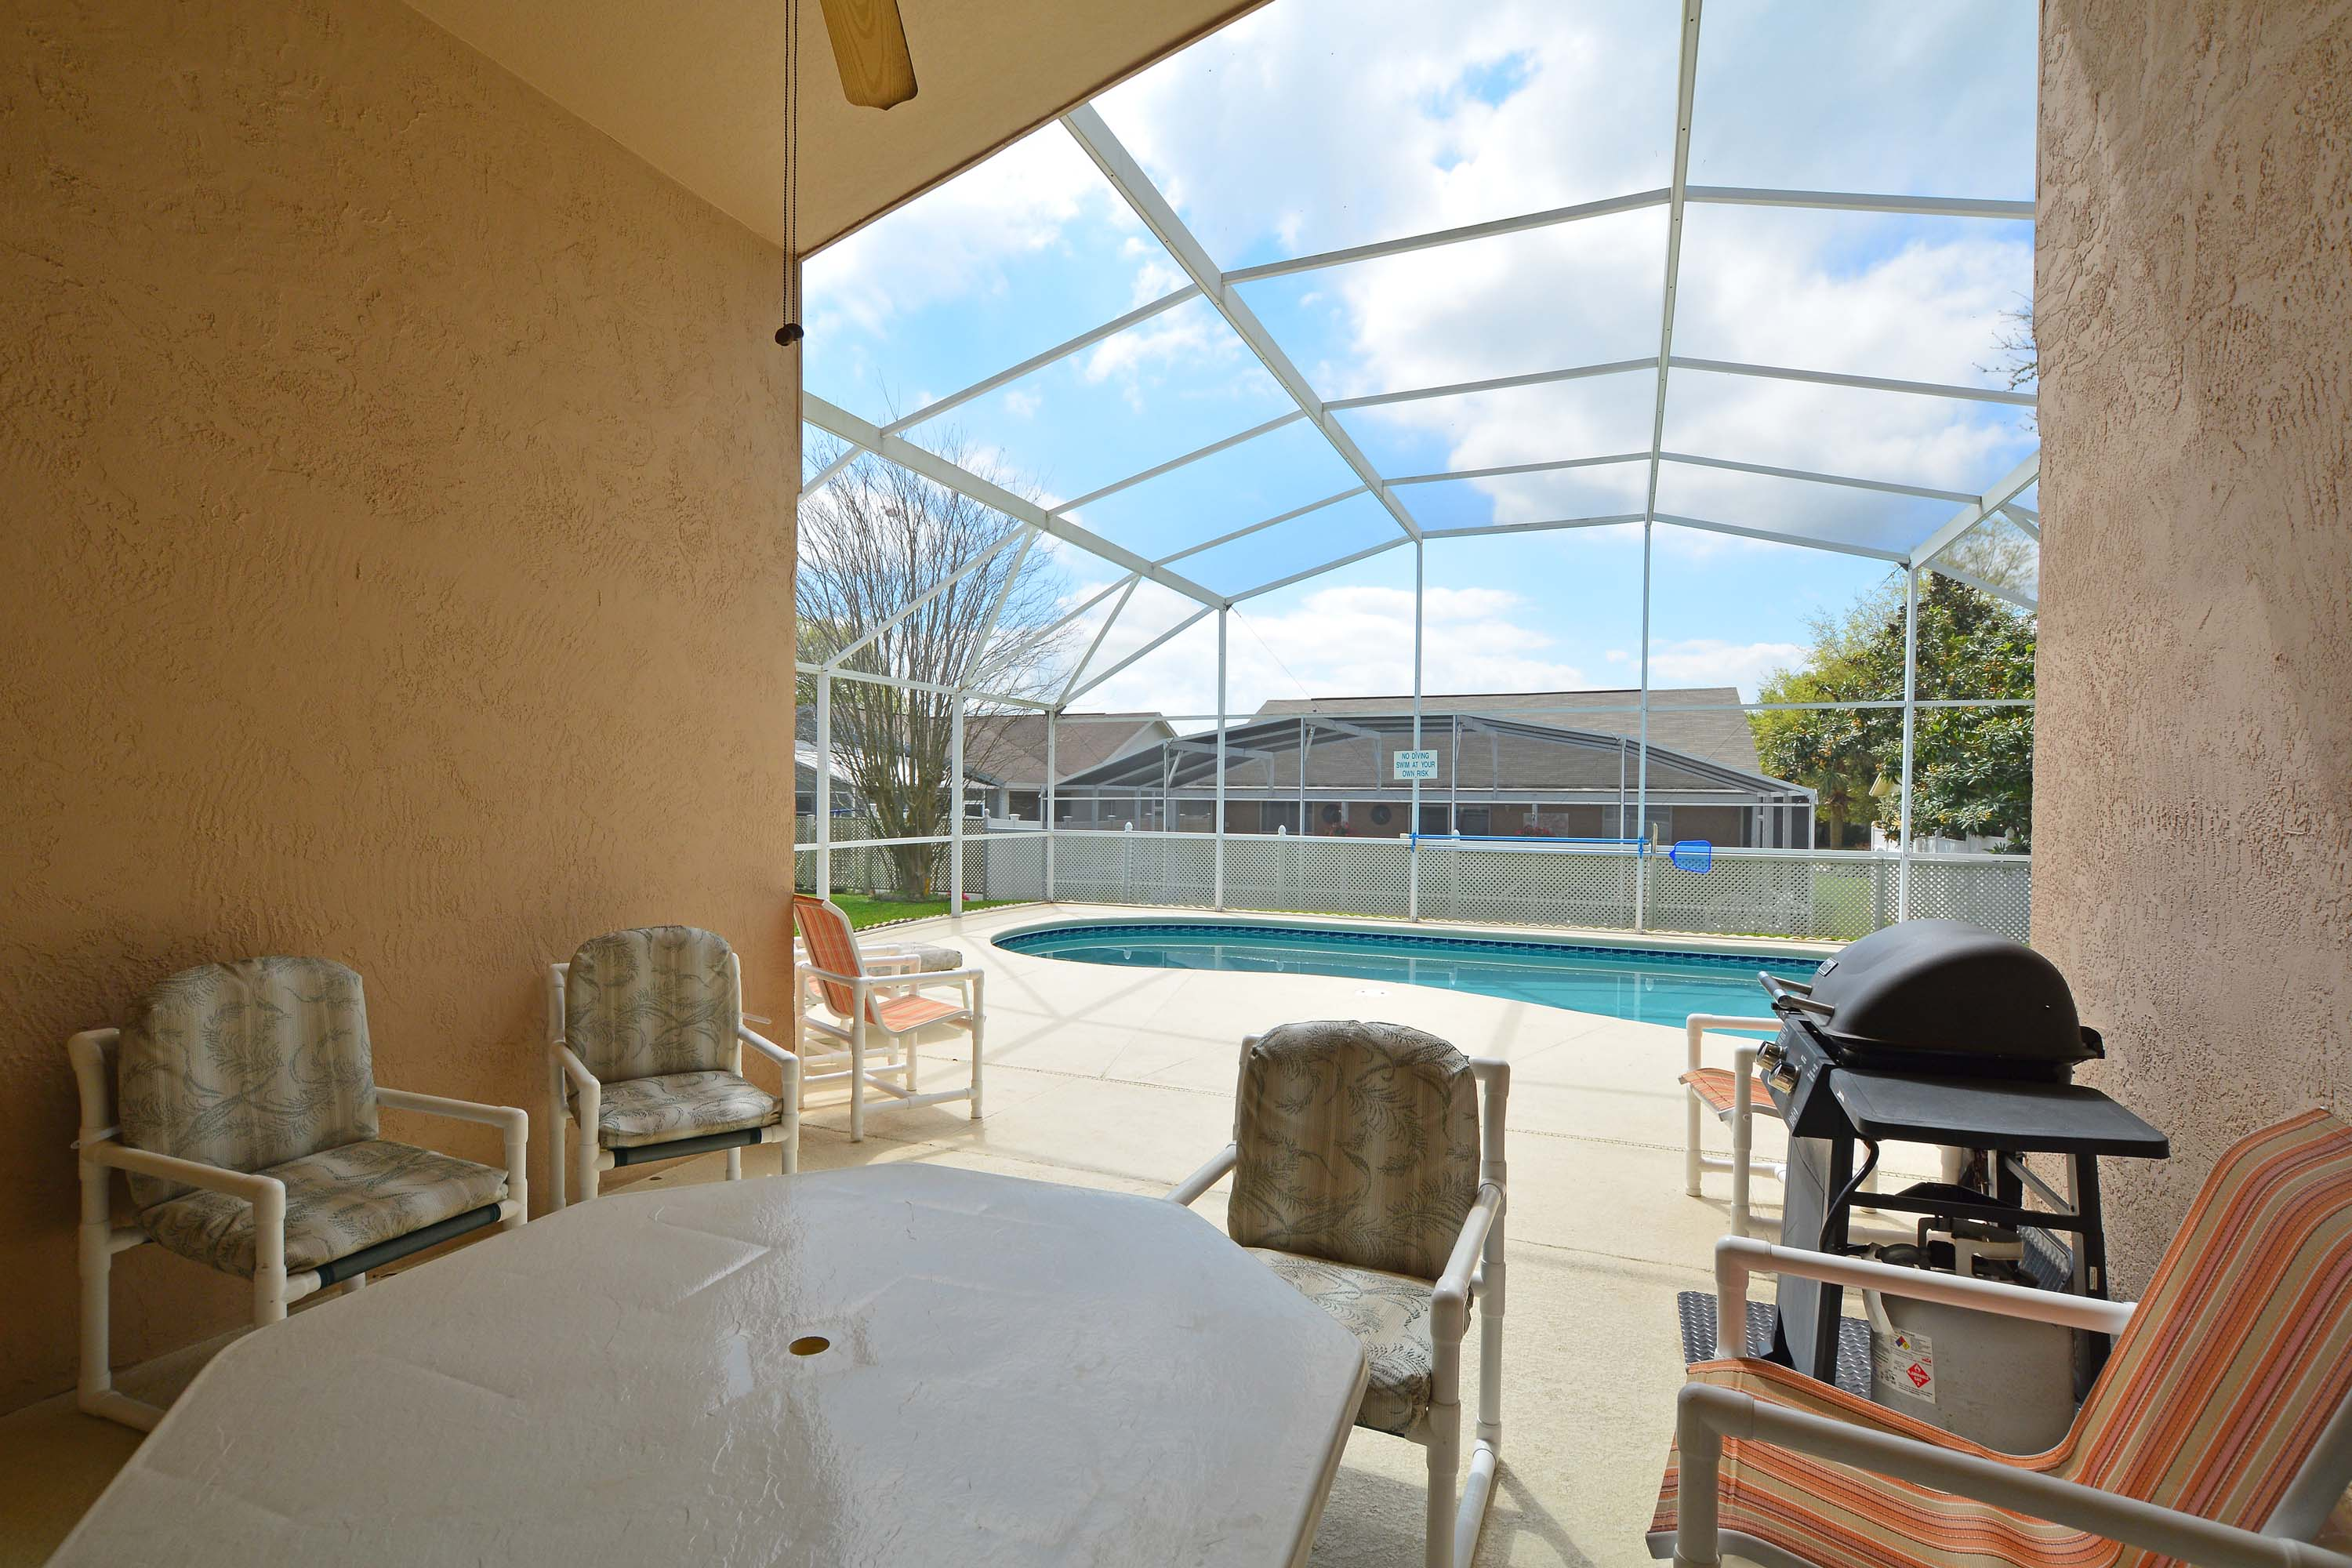 Vacation Homes For Rent In Kissimmee Fl Indian Ridge Oaks